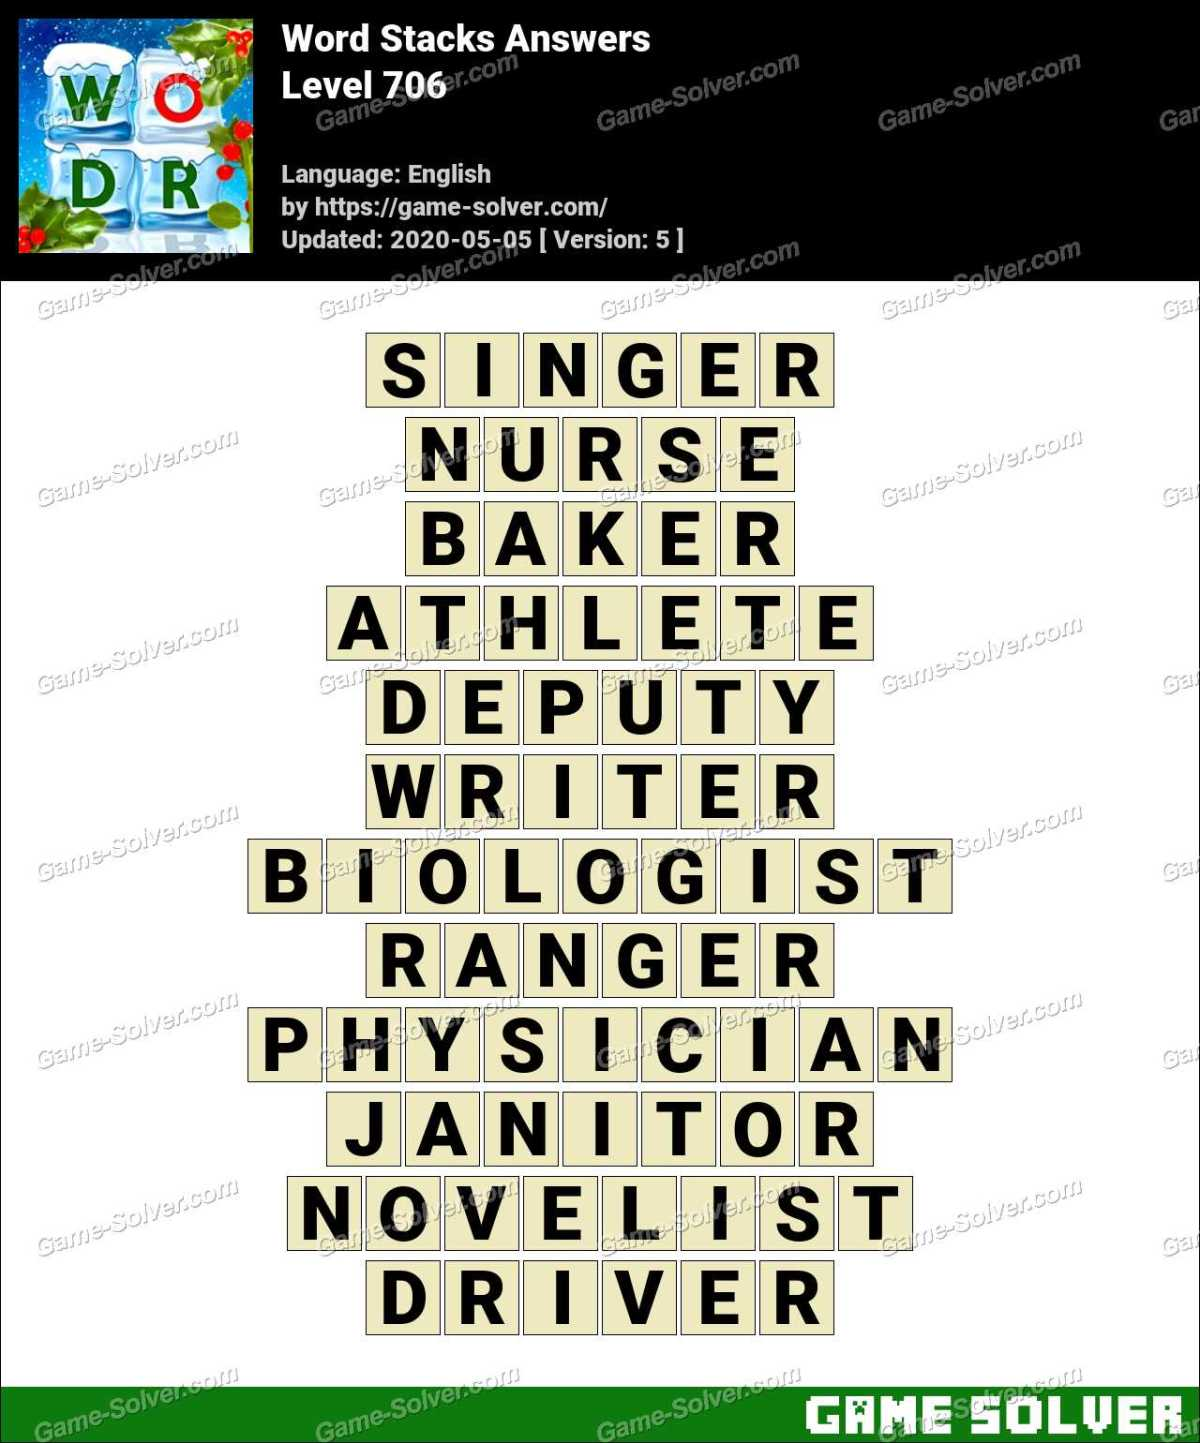 Word Stacks Level 706 Answers